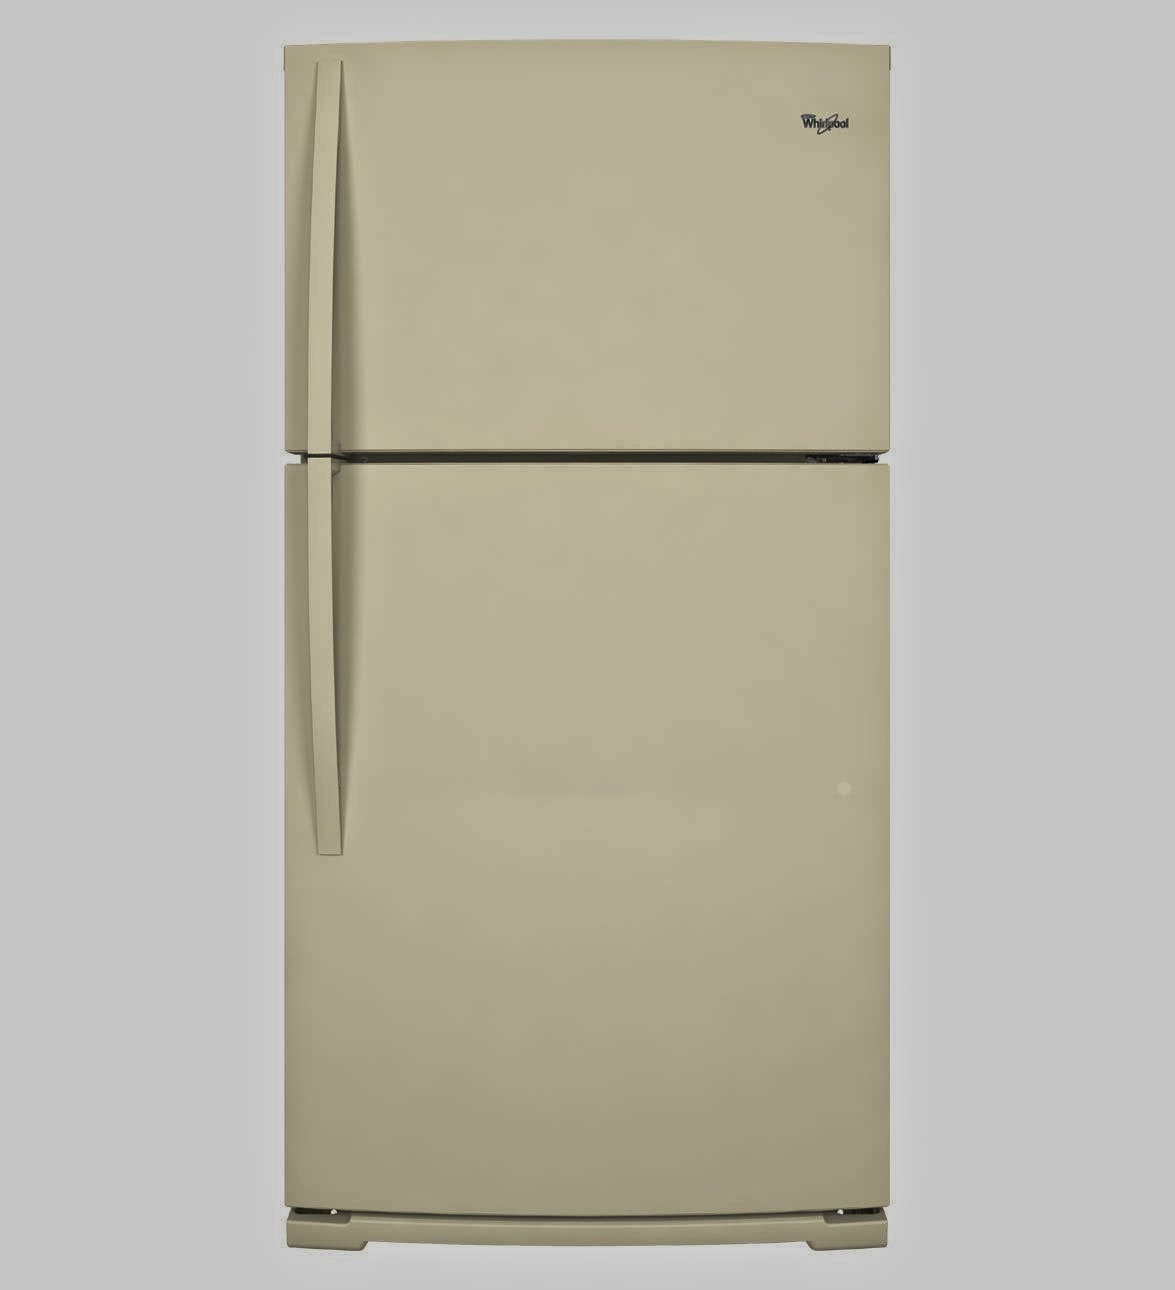 Whirlpool Refrigerators Whirlpool Top Freezer Refrigerators